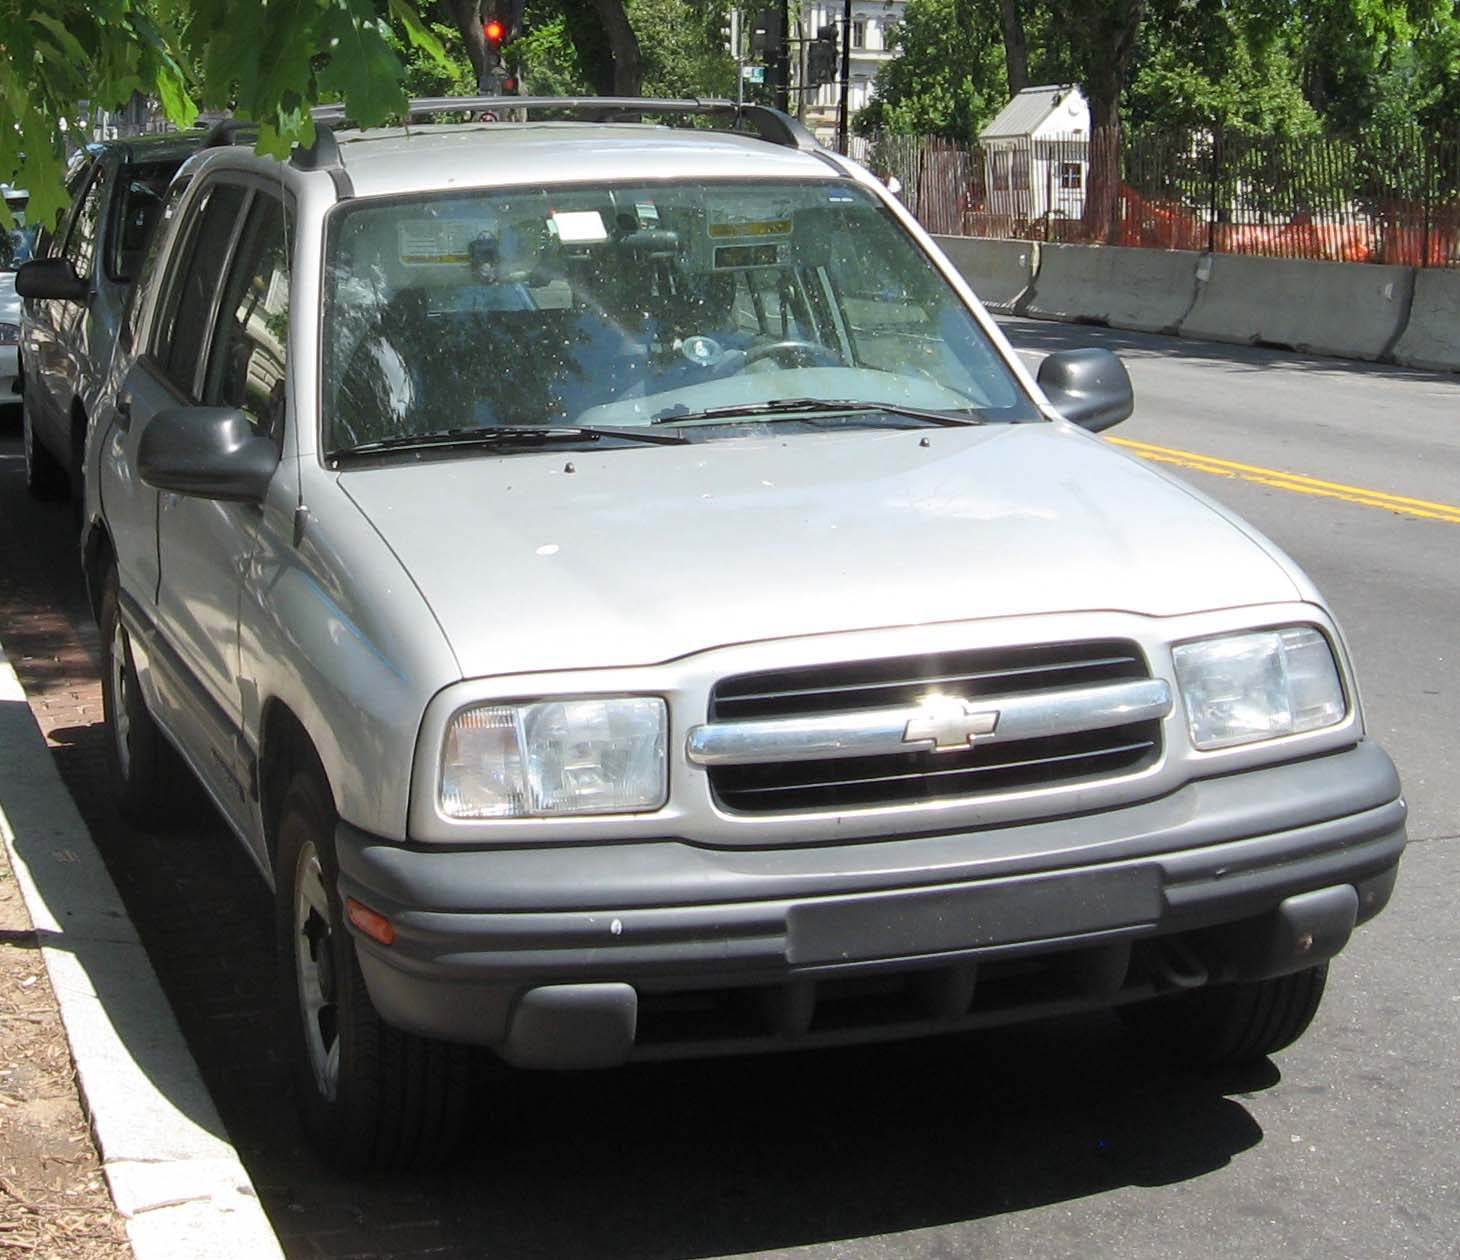 All Chevy chevy 2003 : File:Chevy-Tracker.jpg - Wikimedia Commons